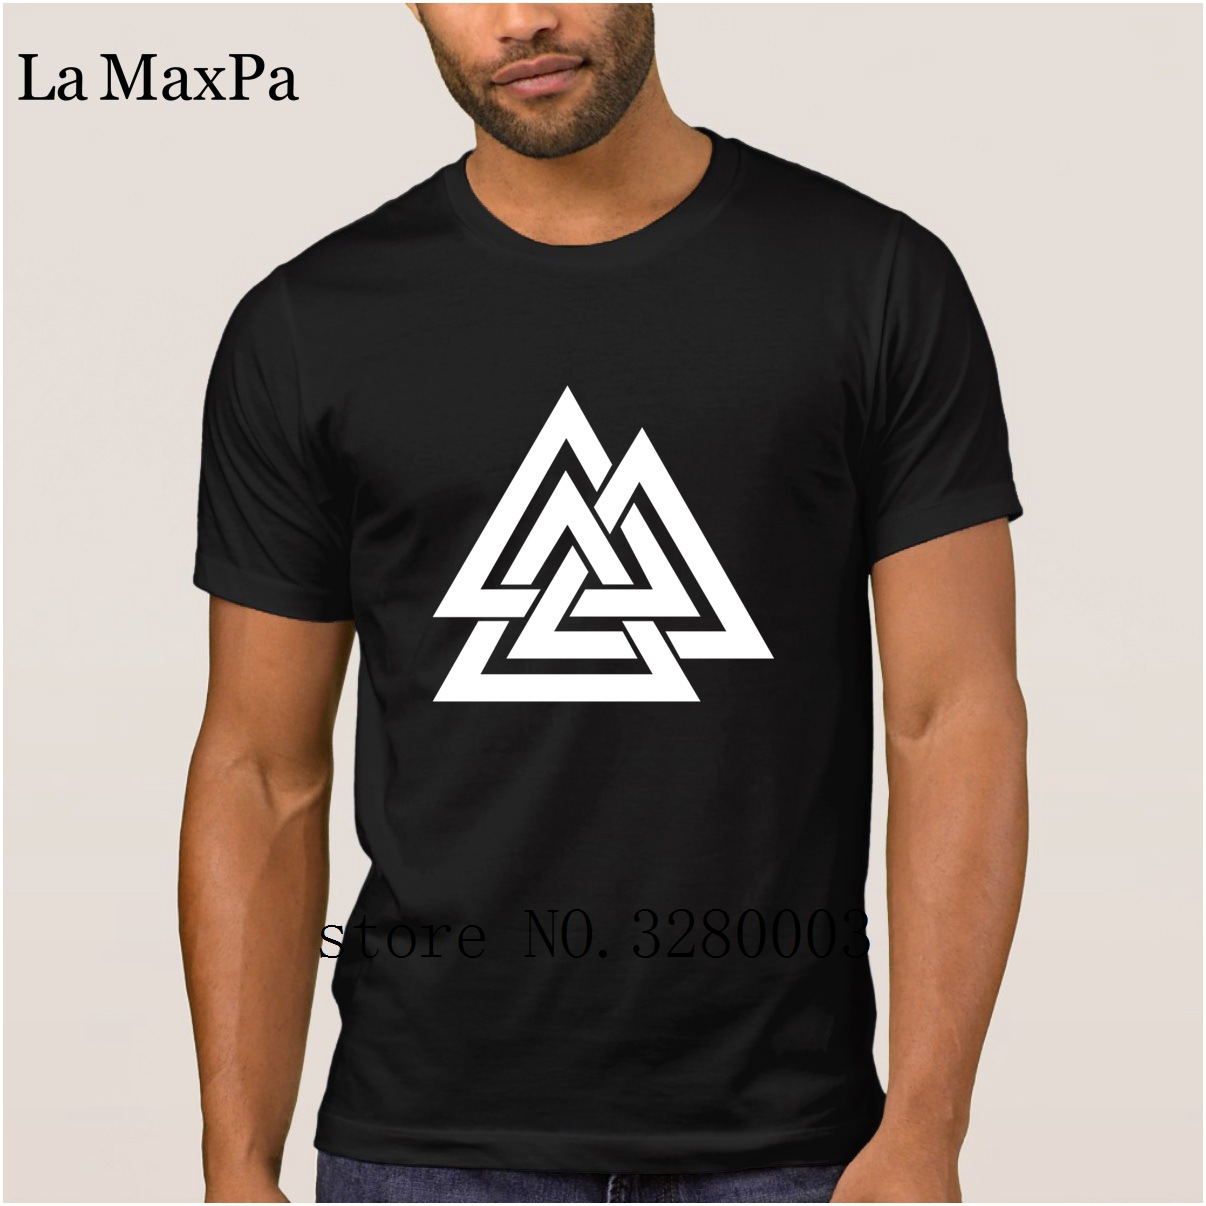 Breathable men t shirt valknut wotan's knot odin walhalla asgard t-shirt Summer Style Letters tshirt for men cool Top Quality